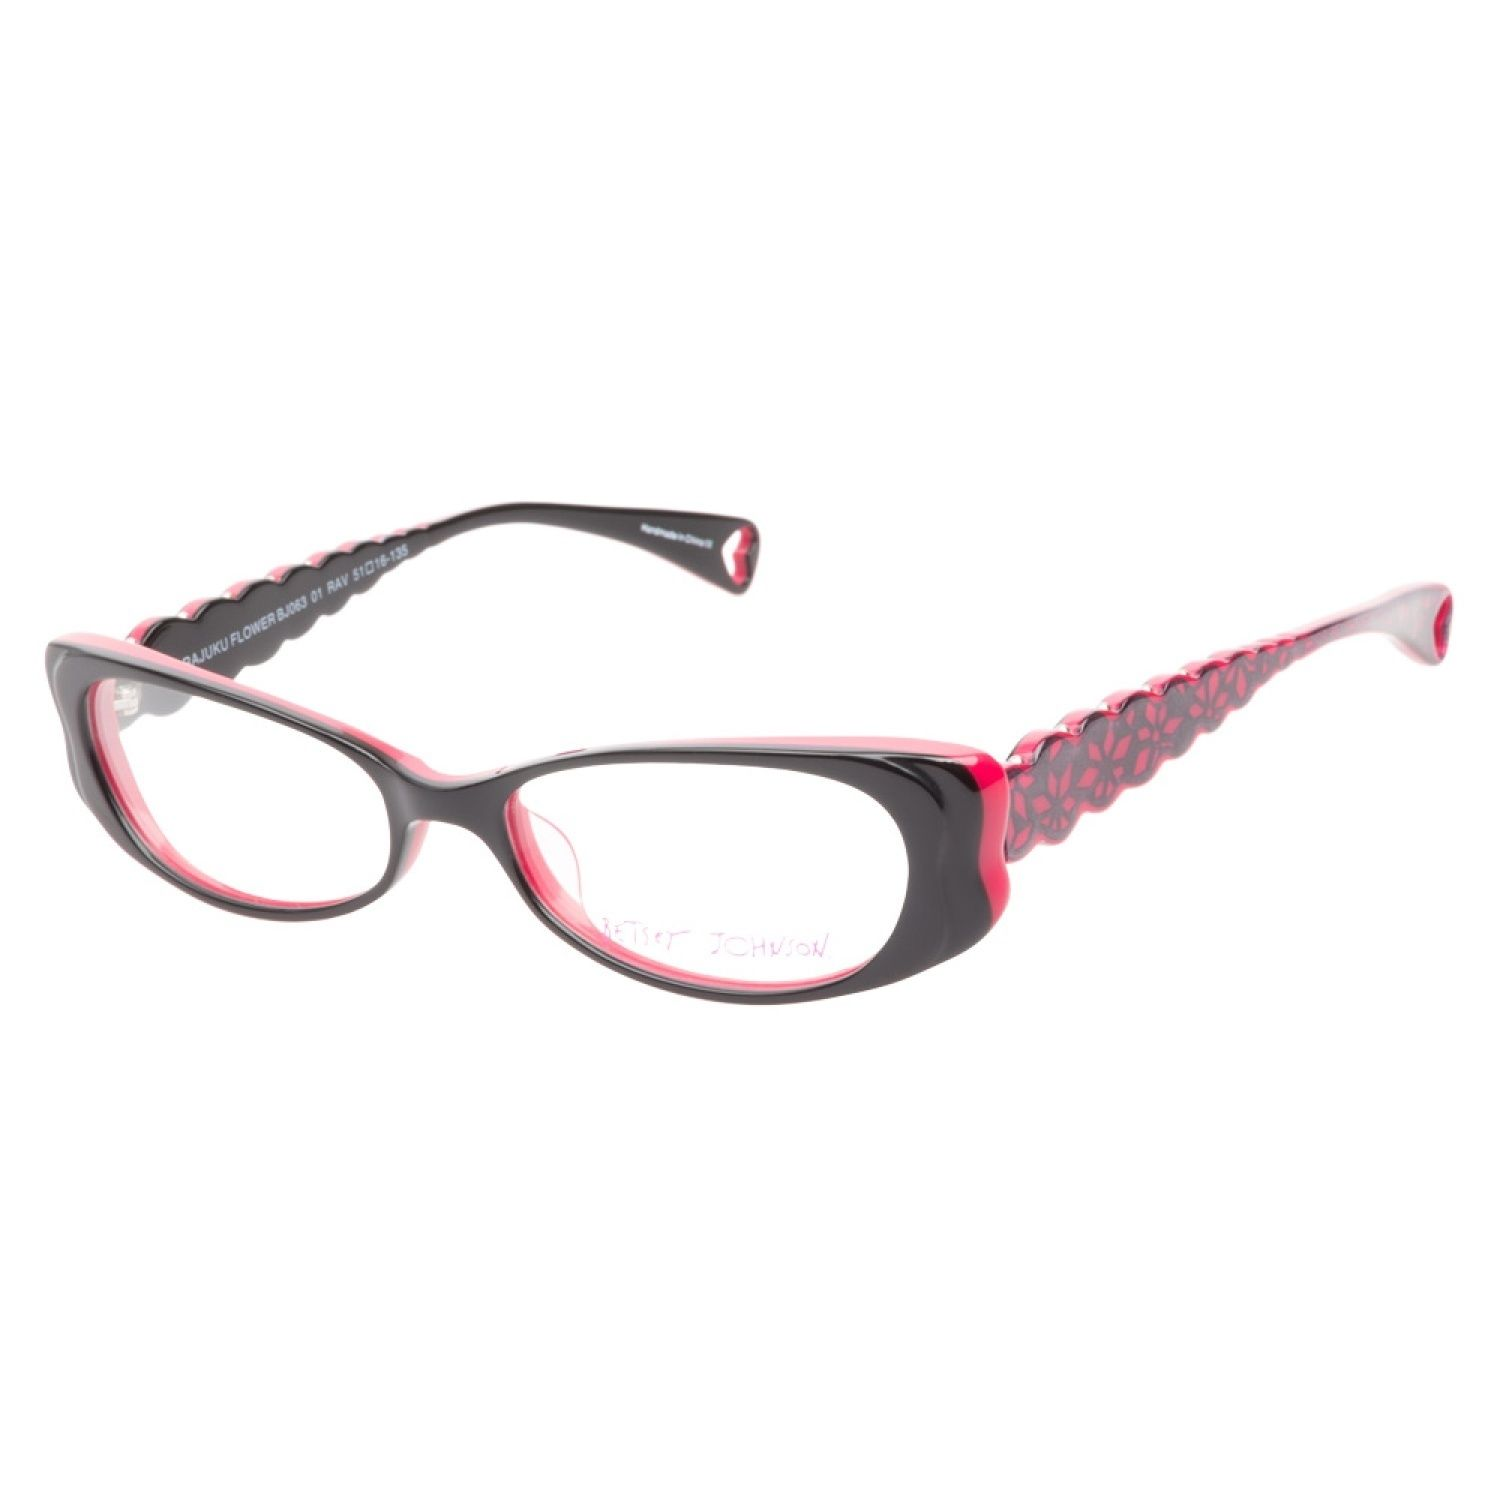 0bd8071c58 Betsey Johnson Harajuku Flower Raven eyeglasses are fiercely fabulous. This  funky frame has a hot